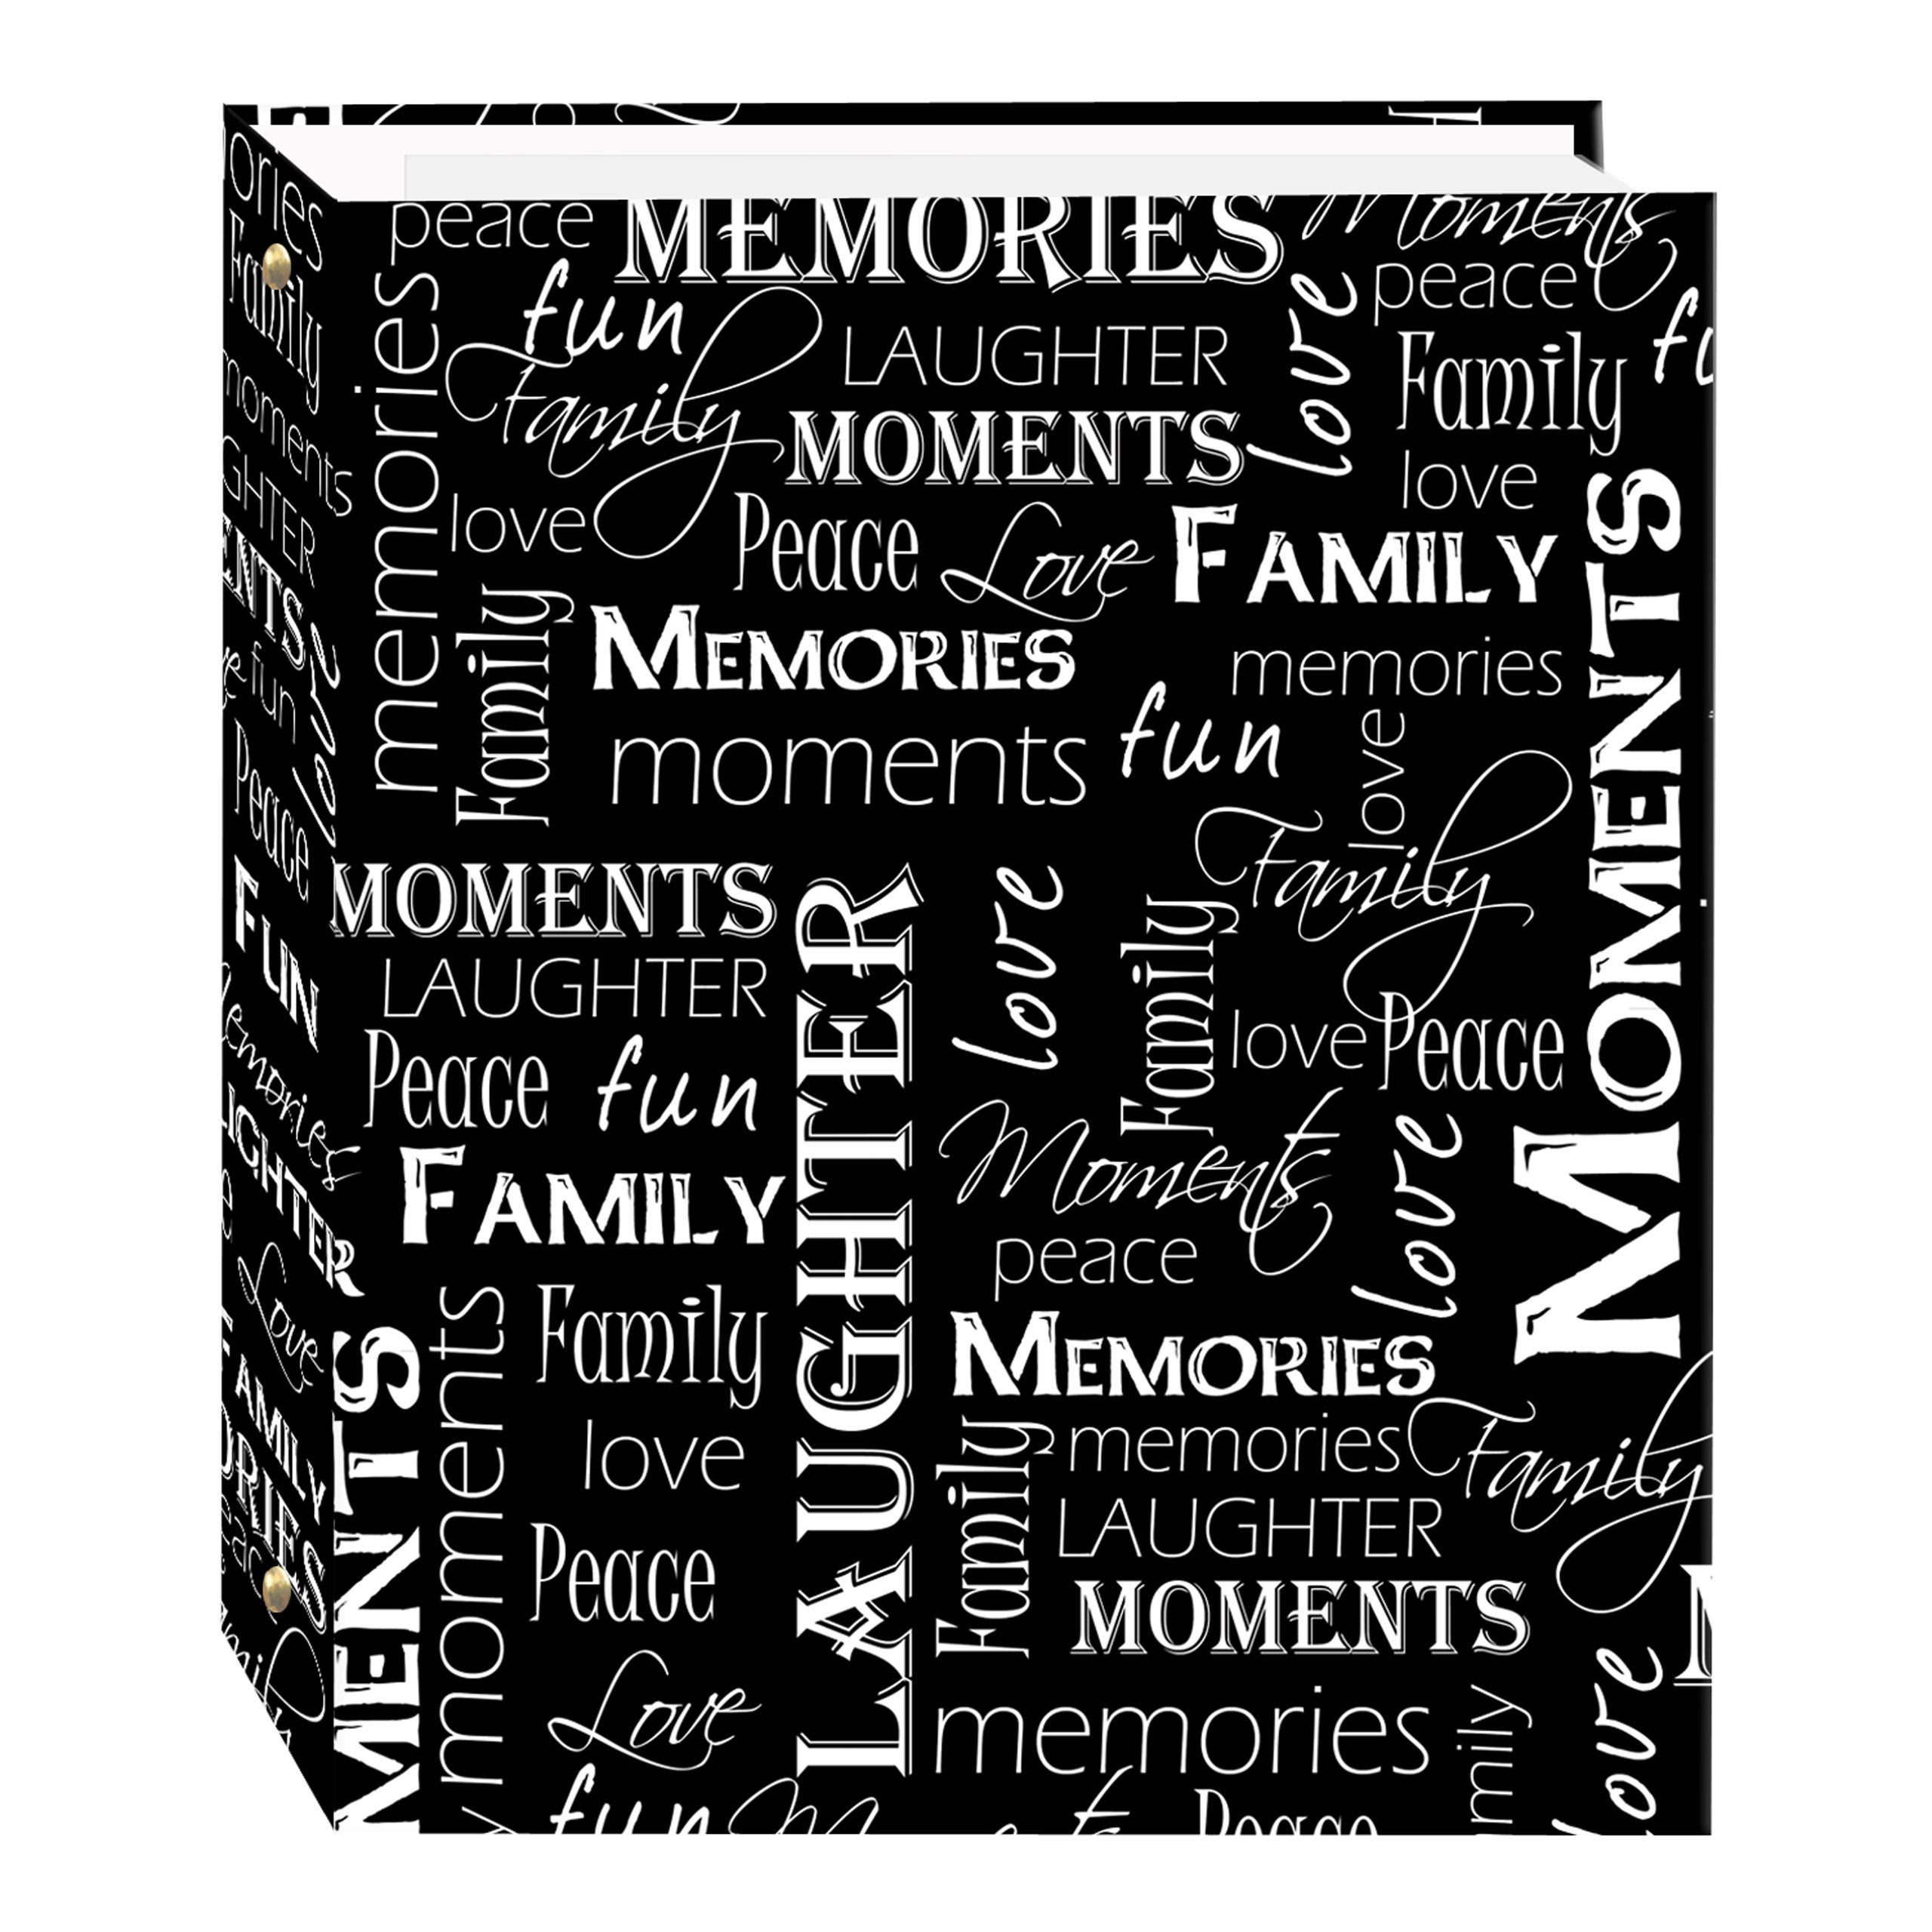 Magnetic Self-Stick 3-Ring Photo Album 100 Pages (50 Sheets), Black & White Words Design